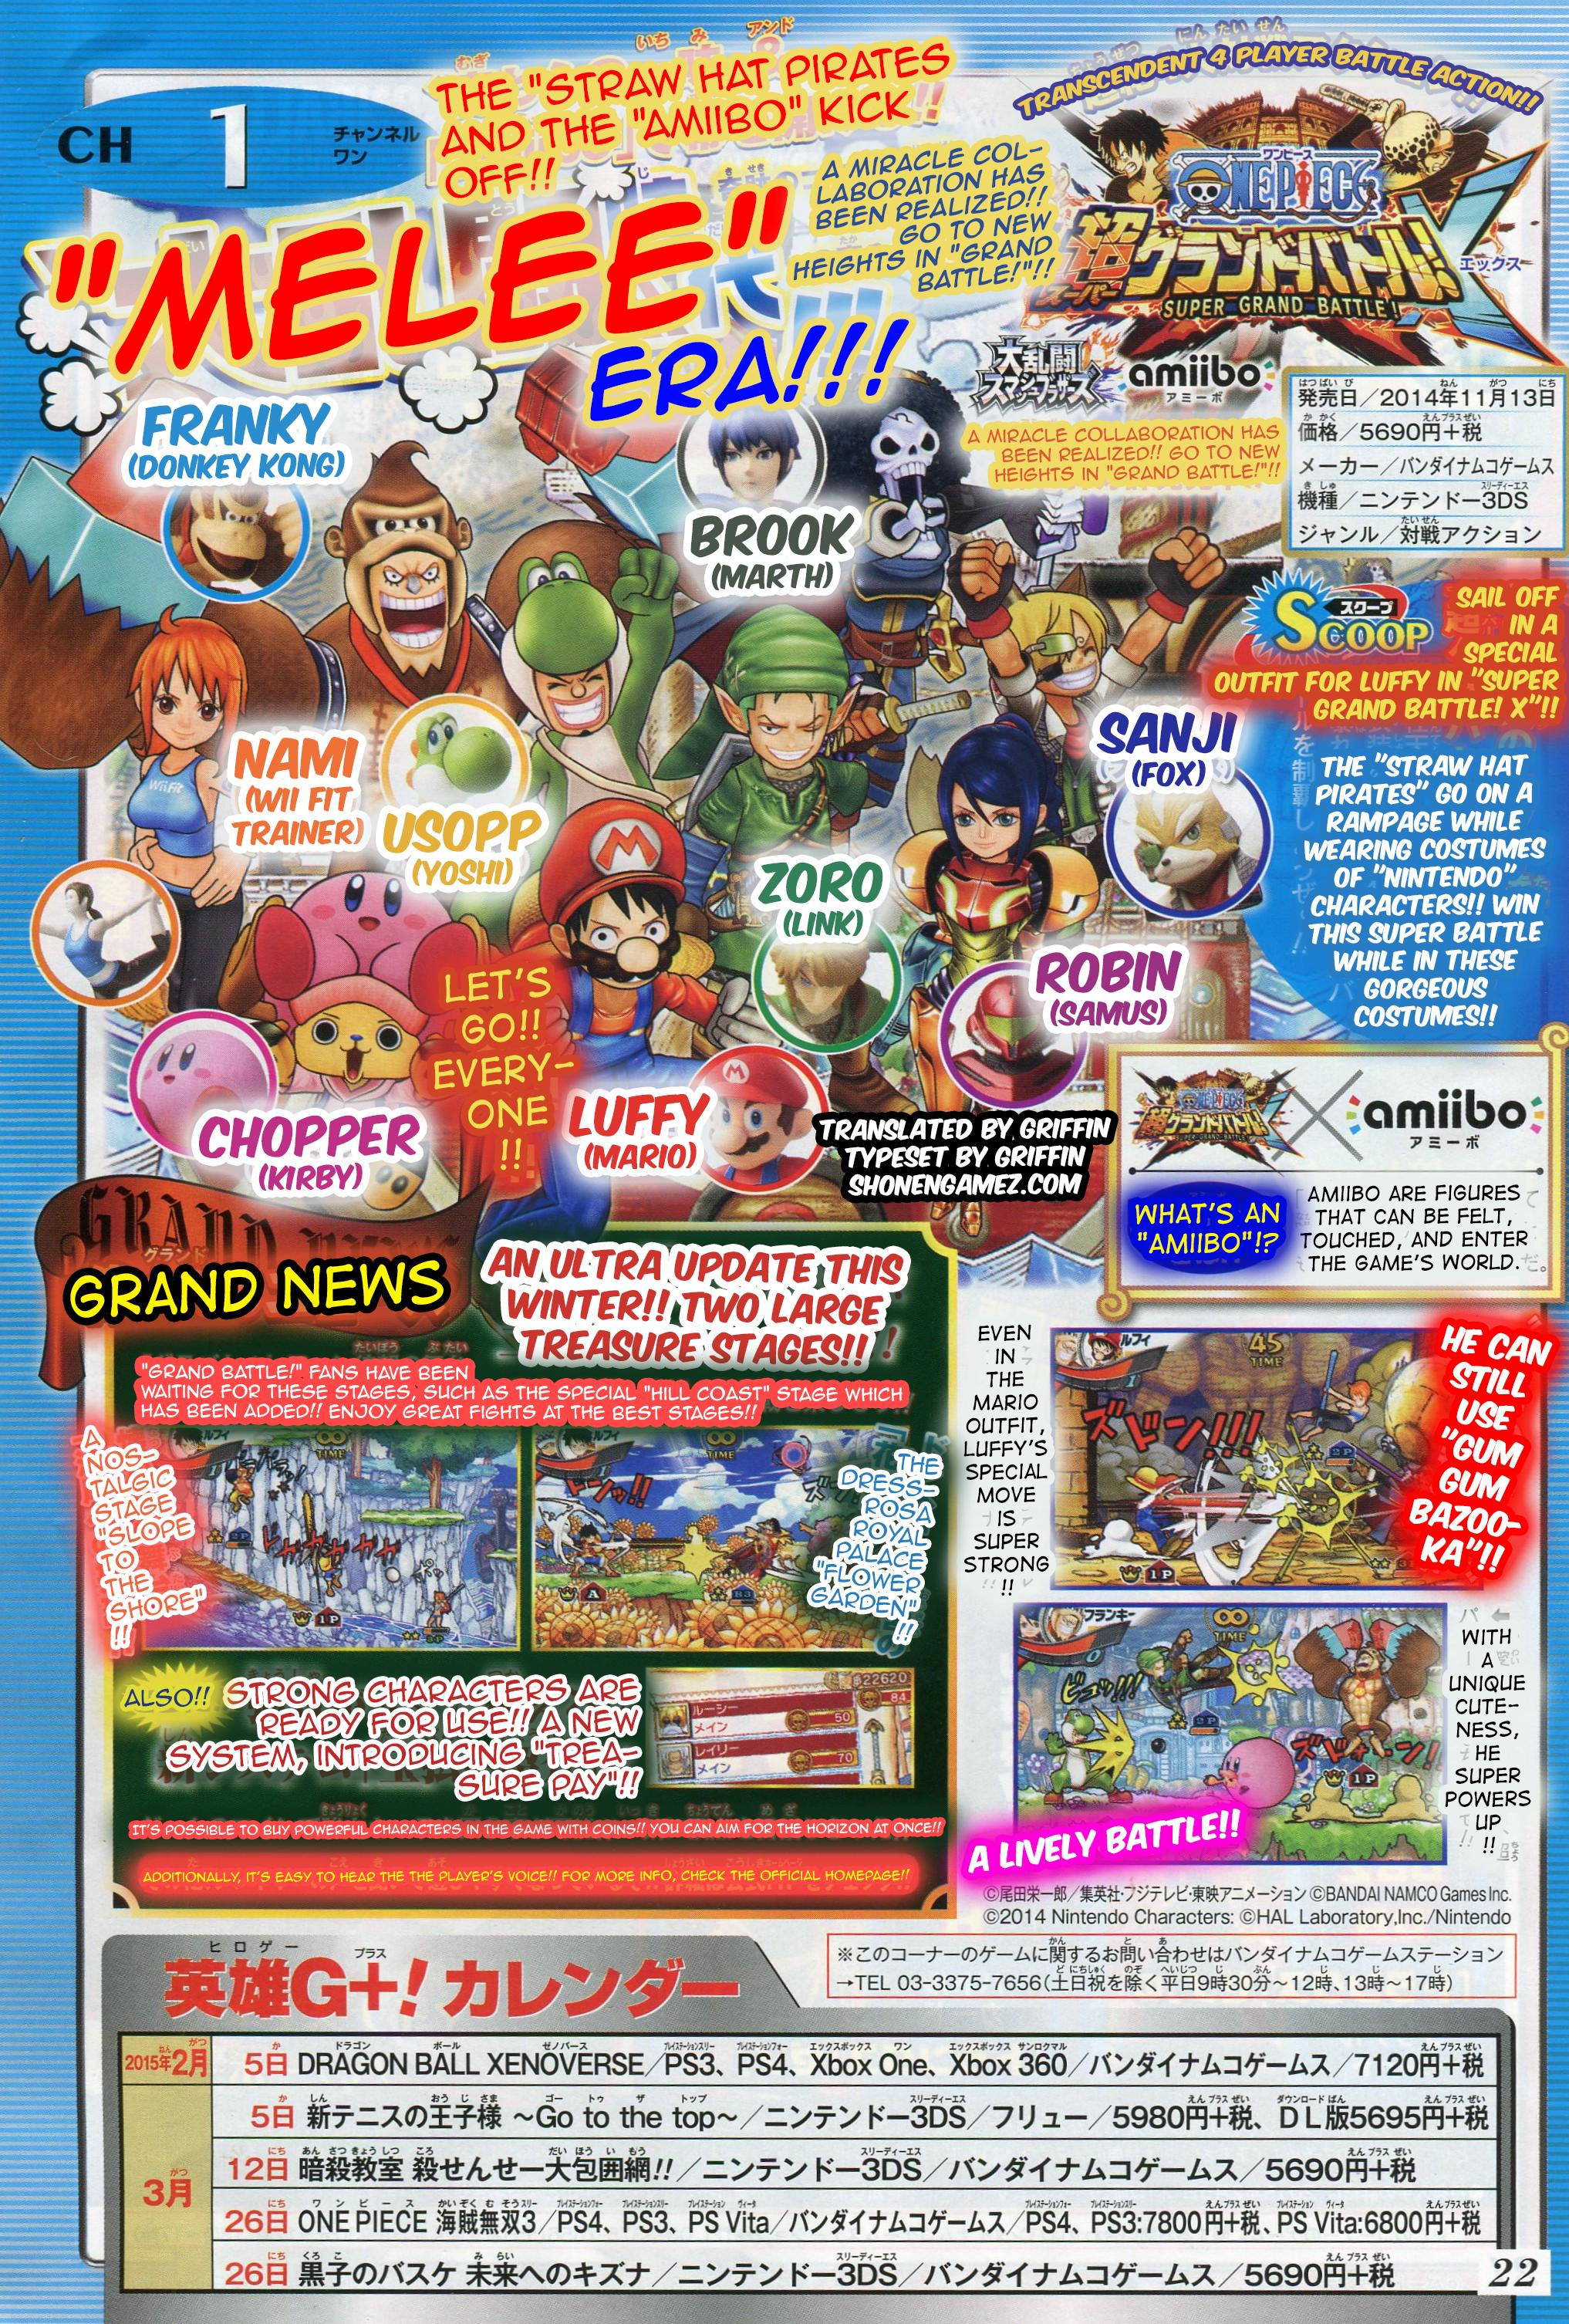 One Piece Super Grand Battle X Stages